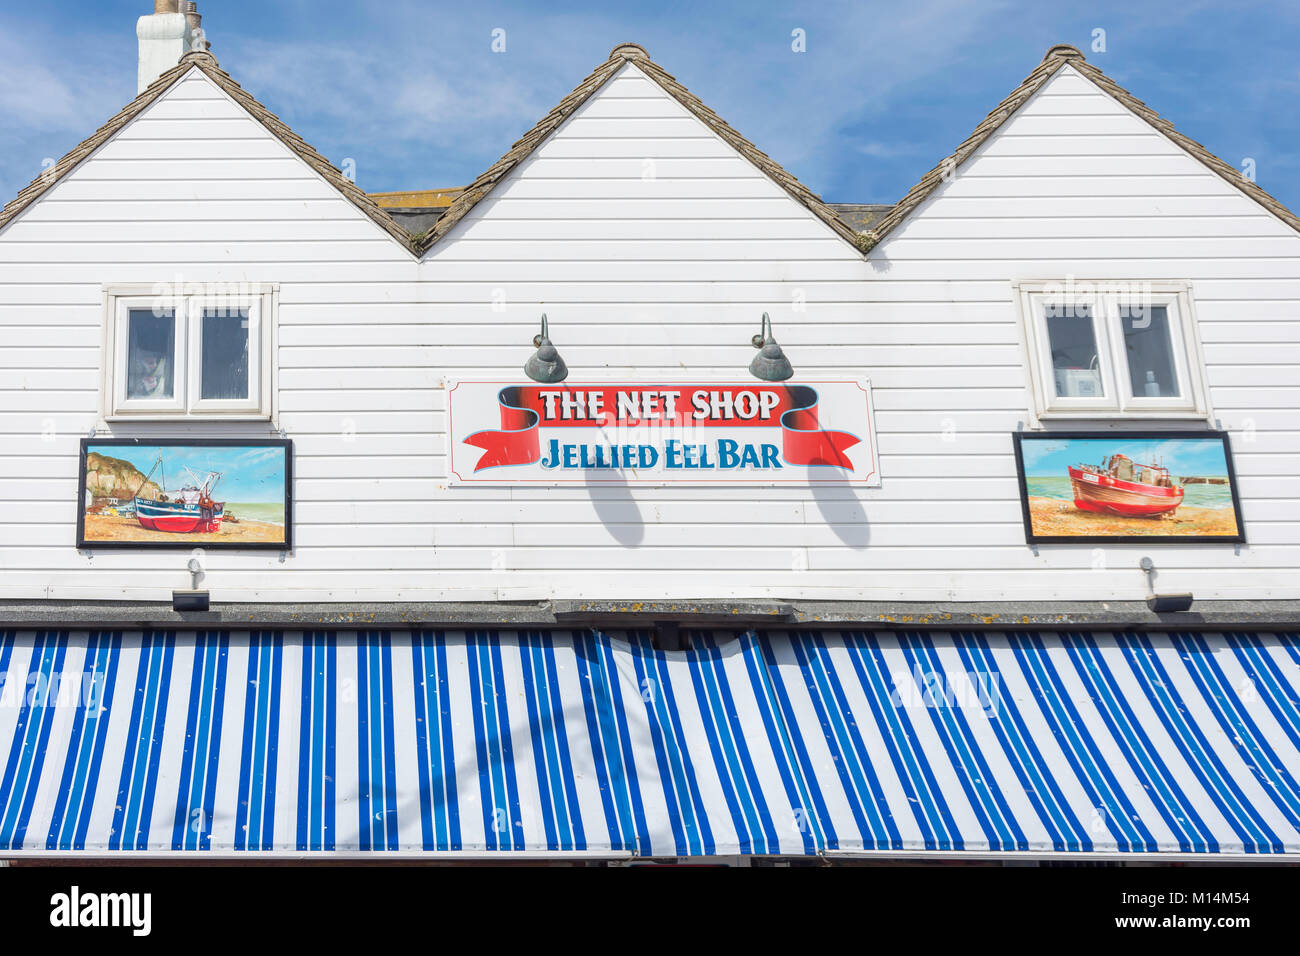 The Net Shop Jellied Eel Bar, Rock-a-Nore Road, Hastings, East Sussex, England, United Kingdom - Stock Image